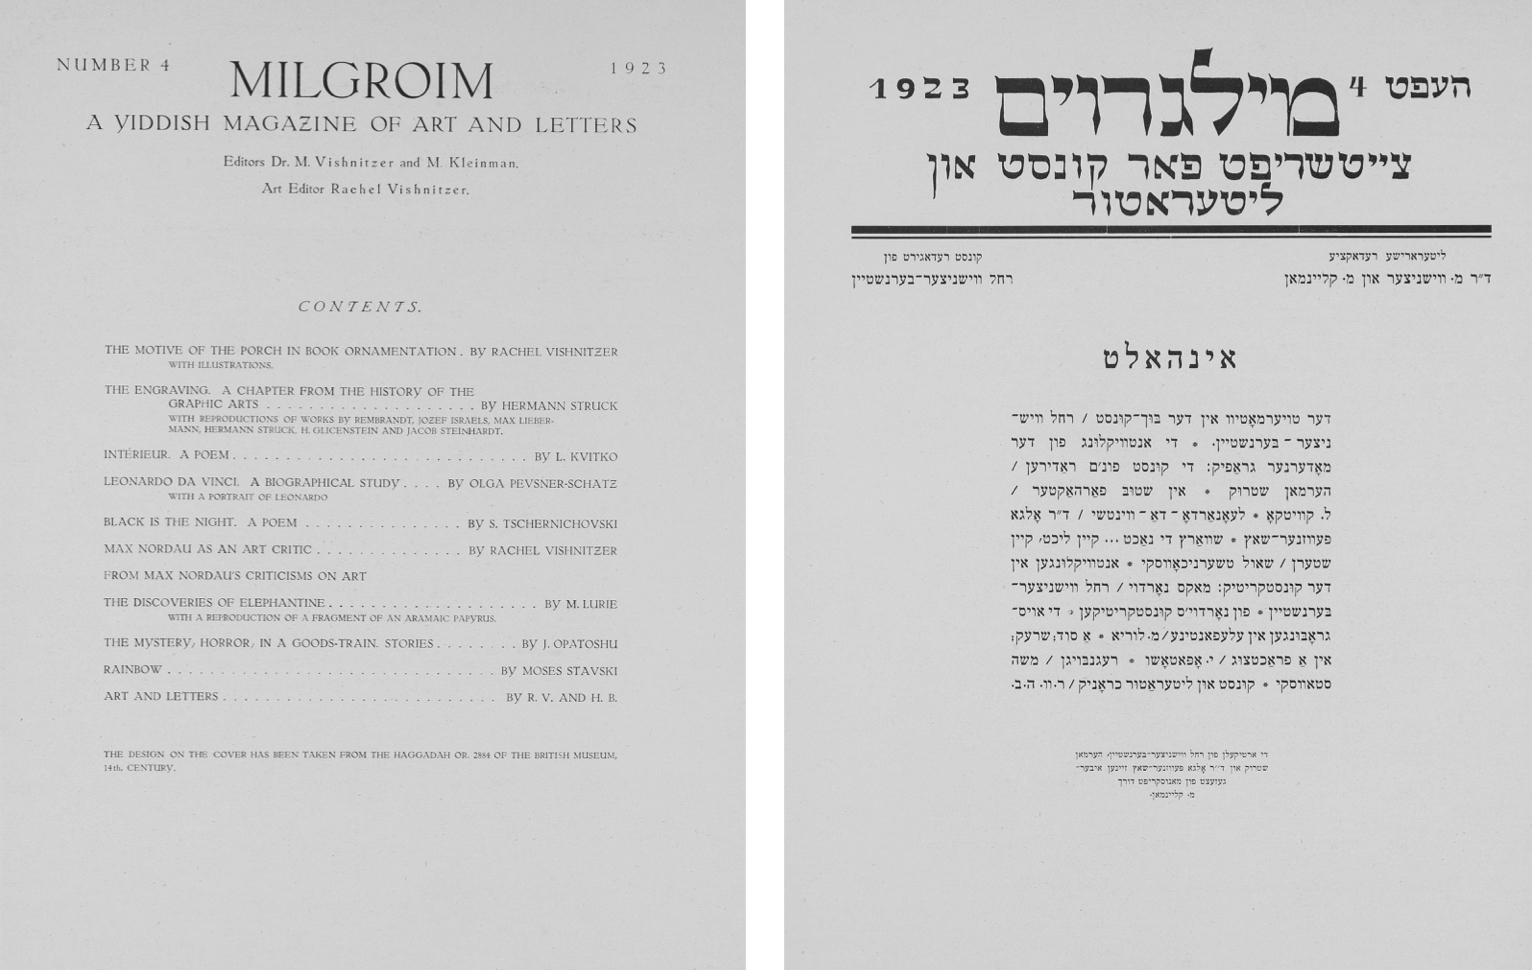 <p>Contents pages of <em>Milgroym</em> issue 4 in English and Yiddish</p>